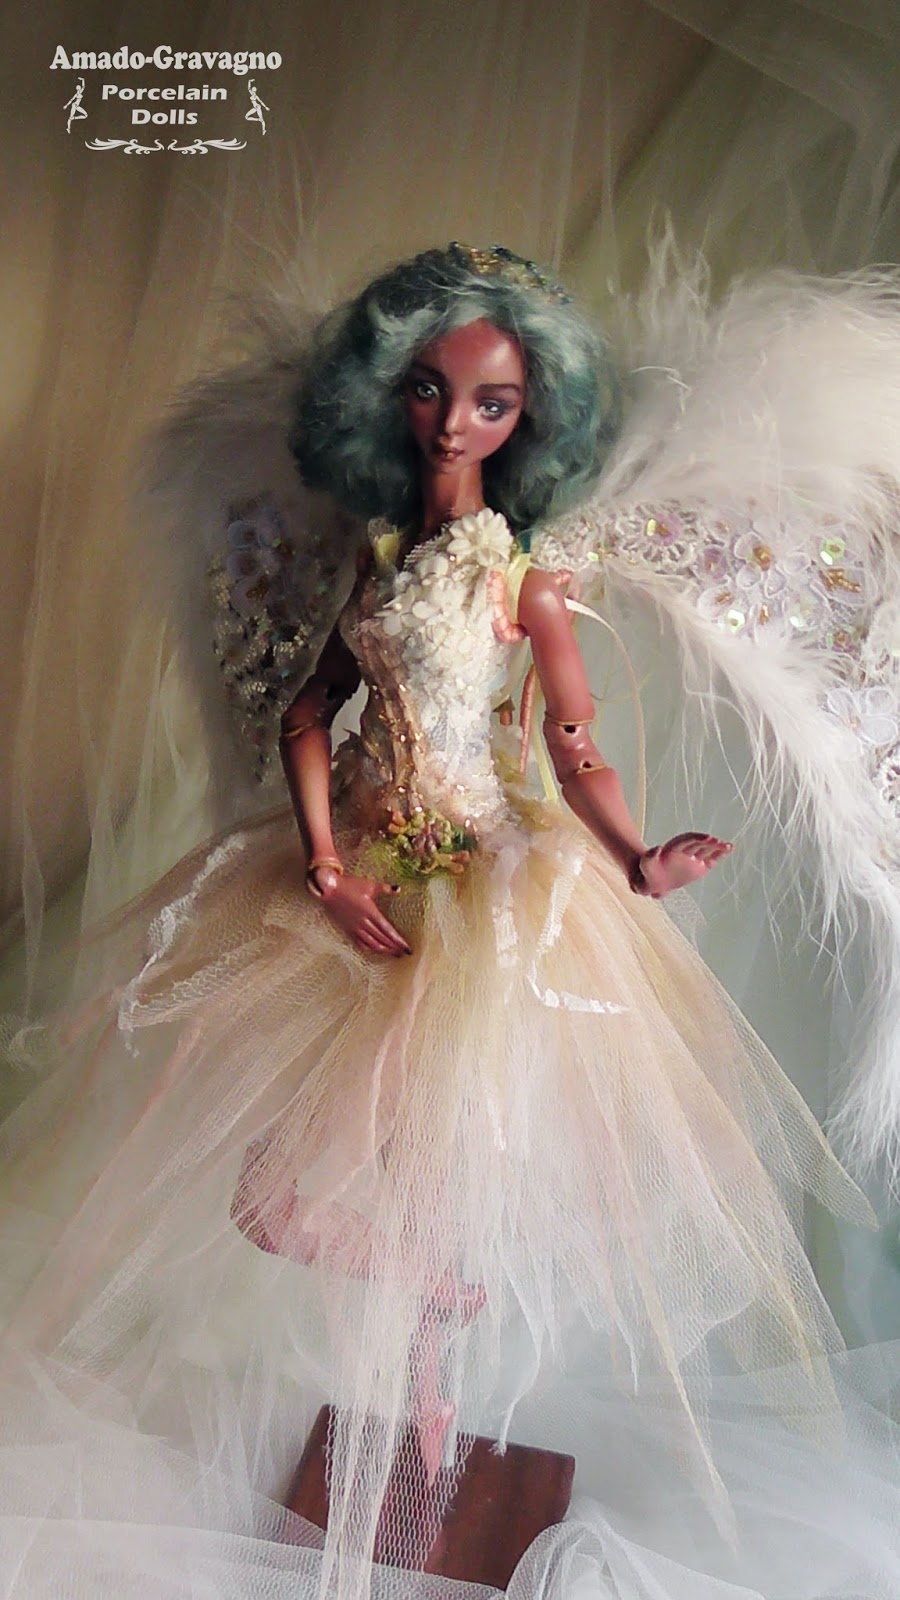 balck girl magic fairy angel ballerina porcelain bjd doll